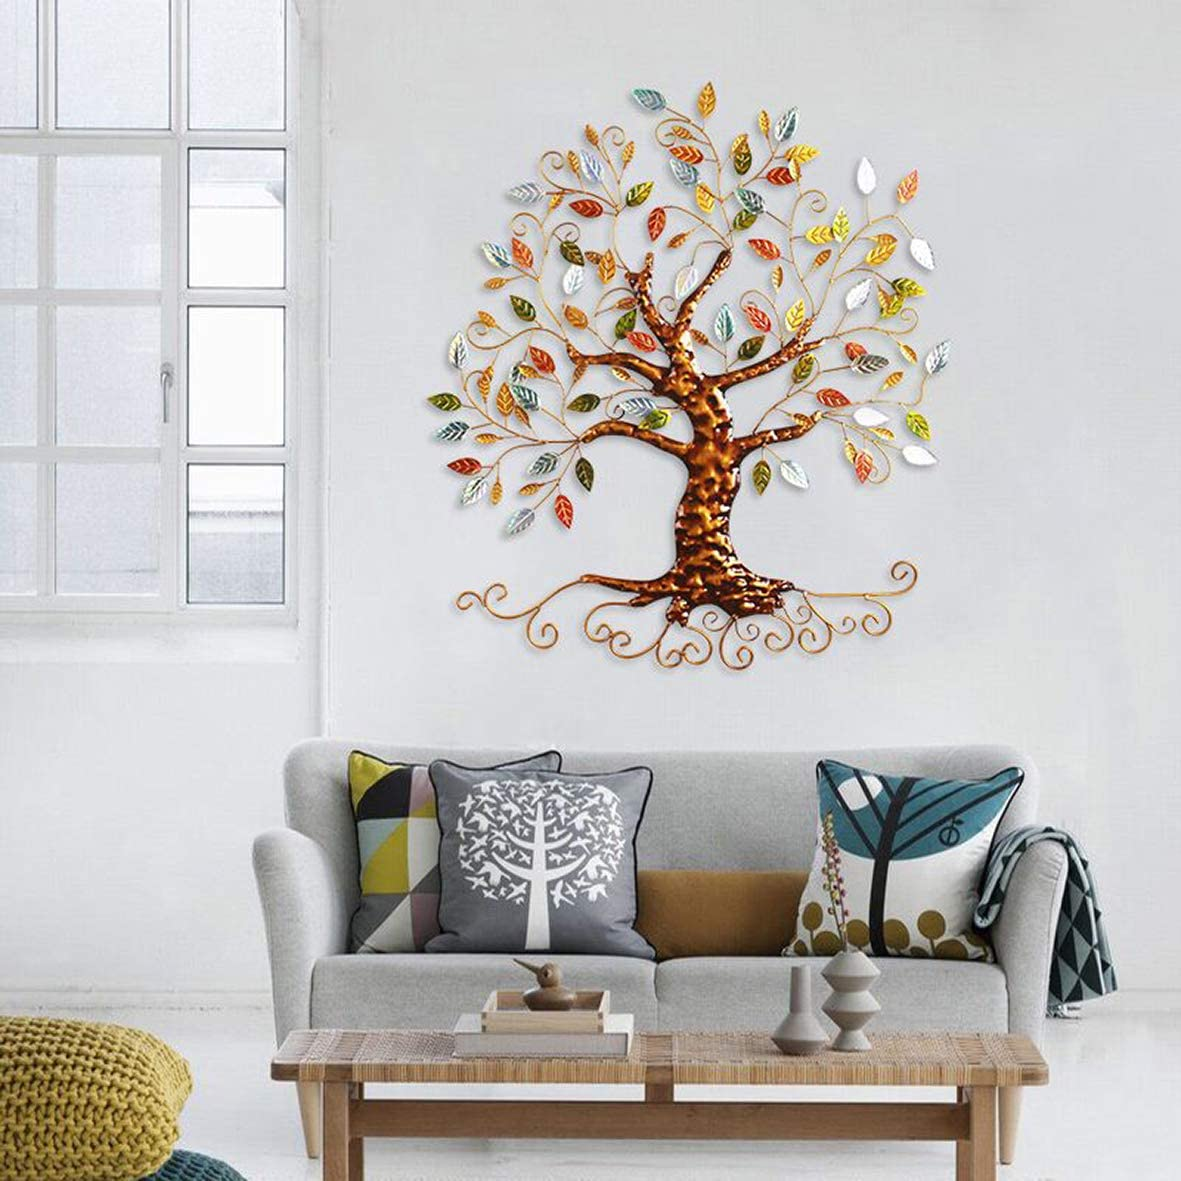 Tree of Life – Metal Tree Wall Sculpture, Gold Tree Home Decor